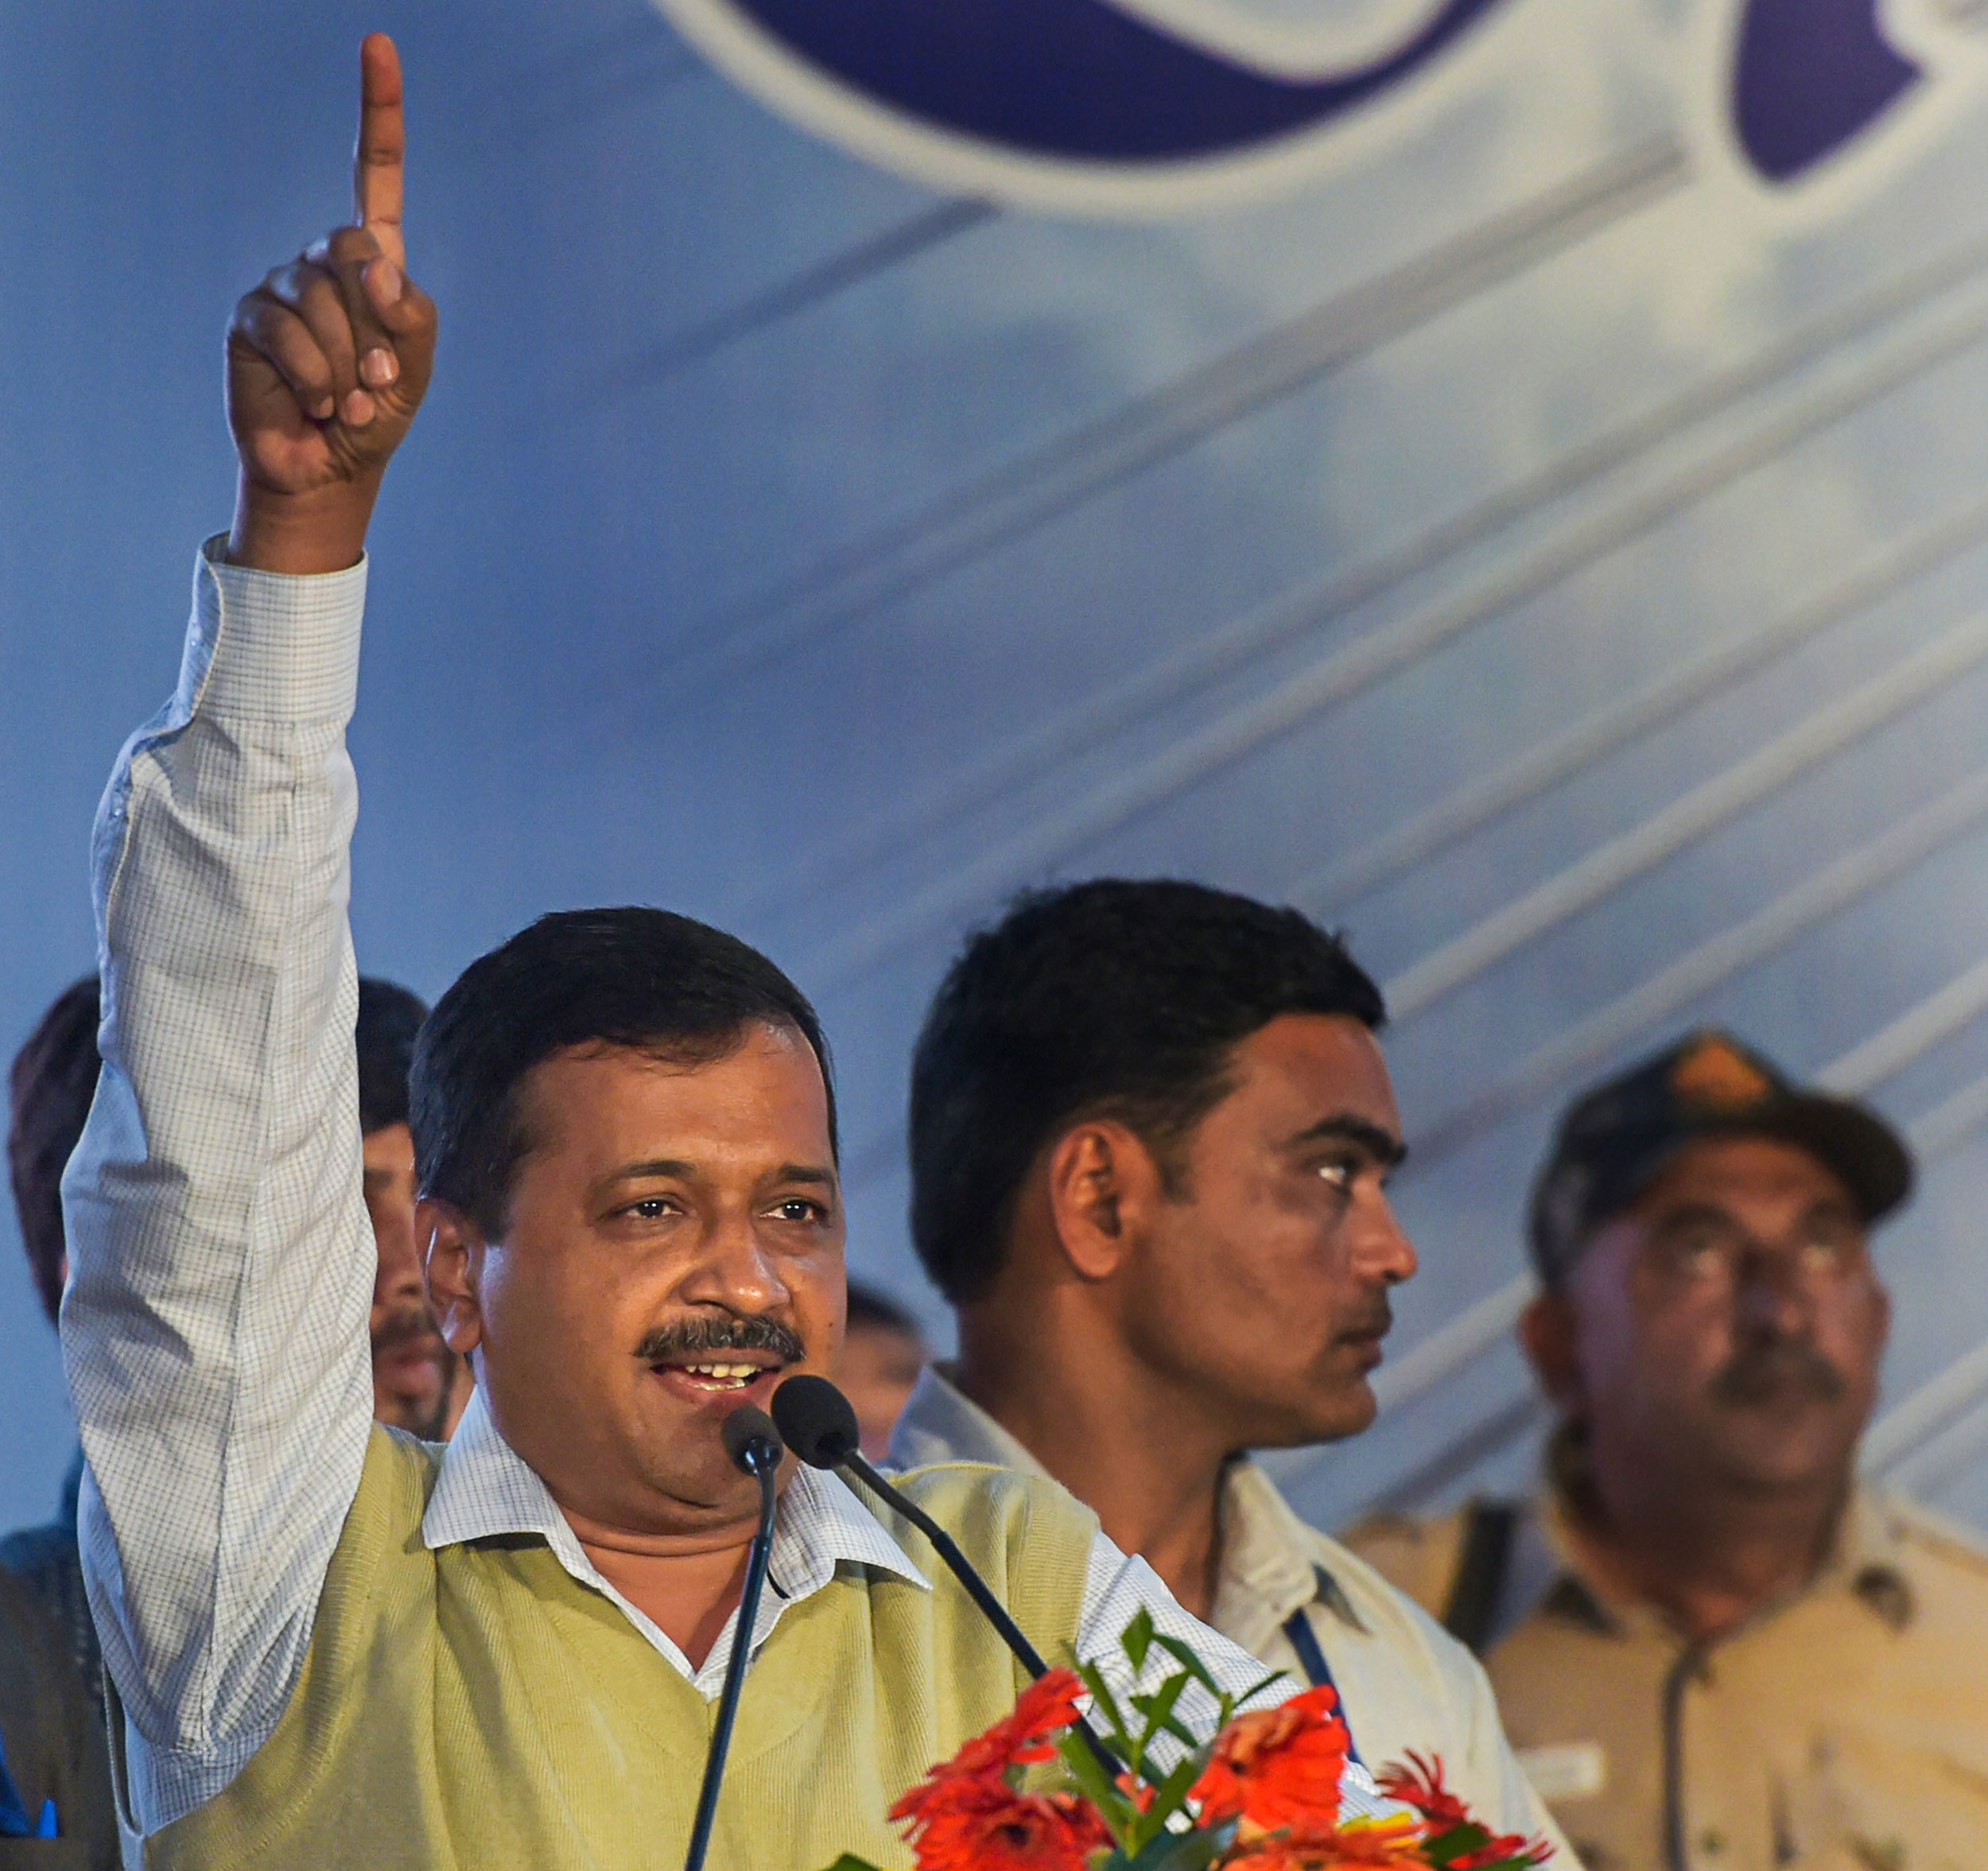 Twenty mini prachar raths in each constituency will tour localities screening chief minister Arvind Kejriwal's speeches on LED screens.